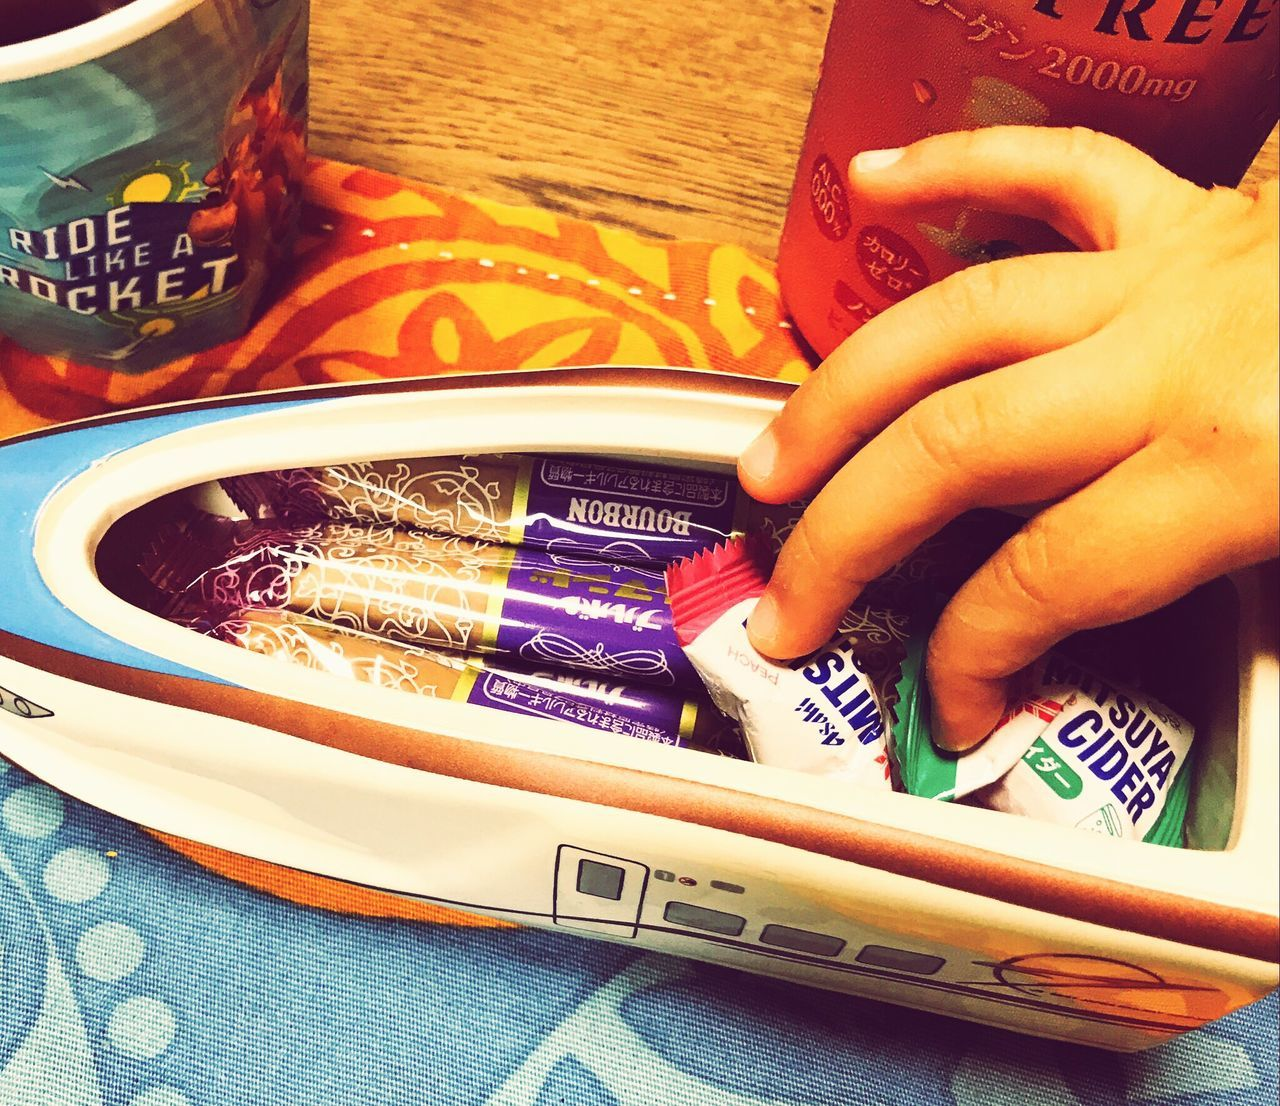 Japan Ikea Design IKEA Shinkansen l Lunchbox Snack Time! Snacks! Candy Beer Cup Toystory